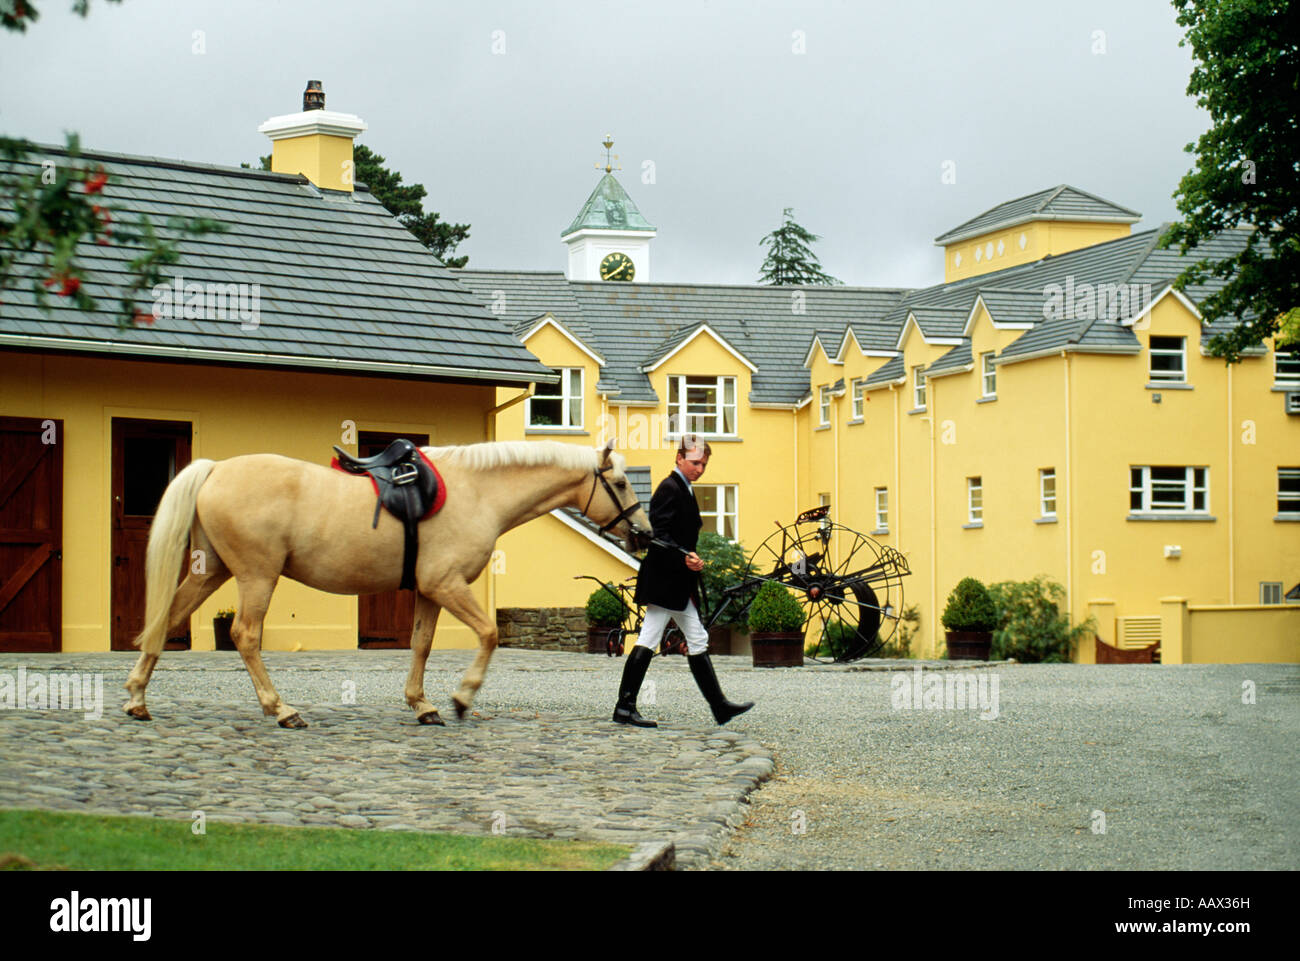 Man with horse at Sheen Falls Lodge in Kenmare, County Kerry, Ireland - Stock Image